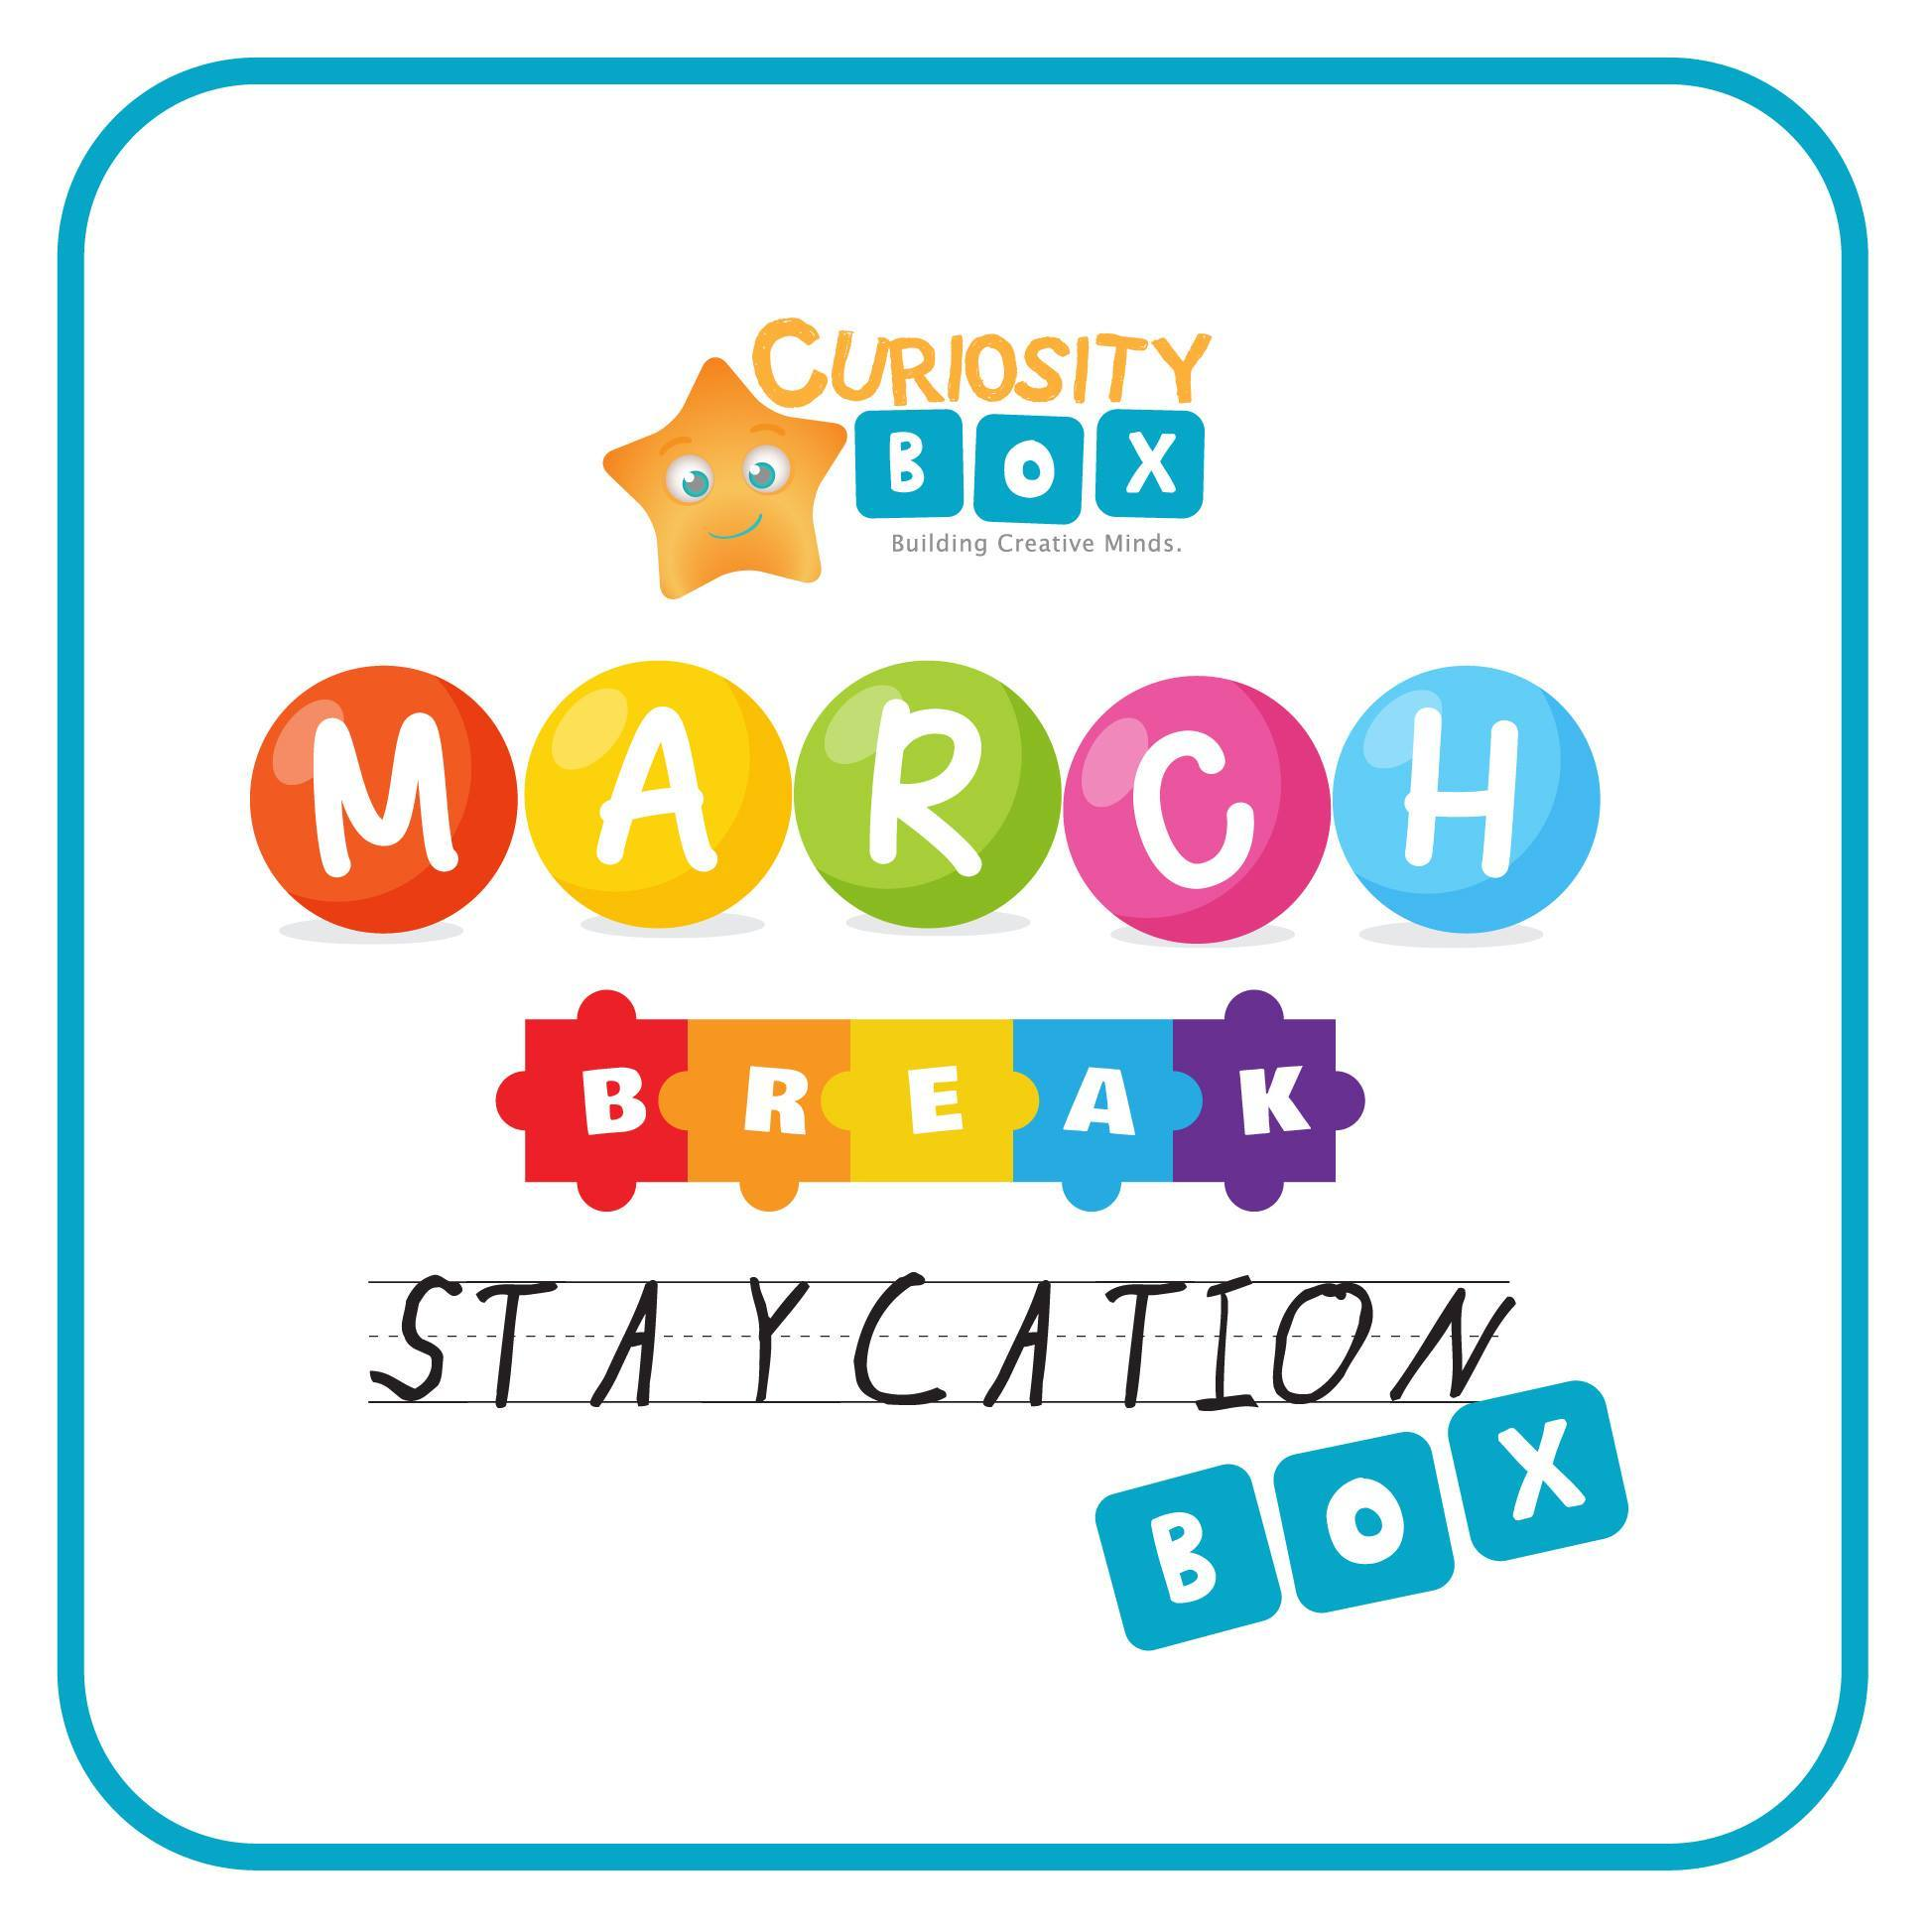 March Break Staycation Box Ages 5-7- Curiosity-Box-Craft-and-Educational-Boxes-Kids-Monthly-Subscription-Box